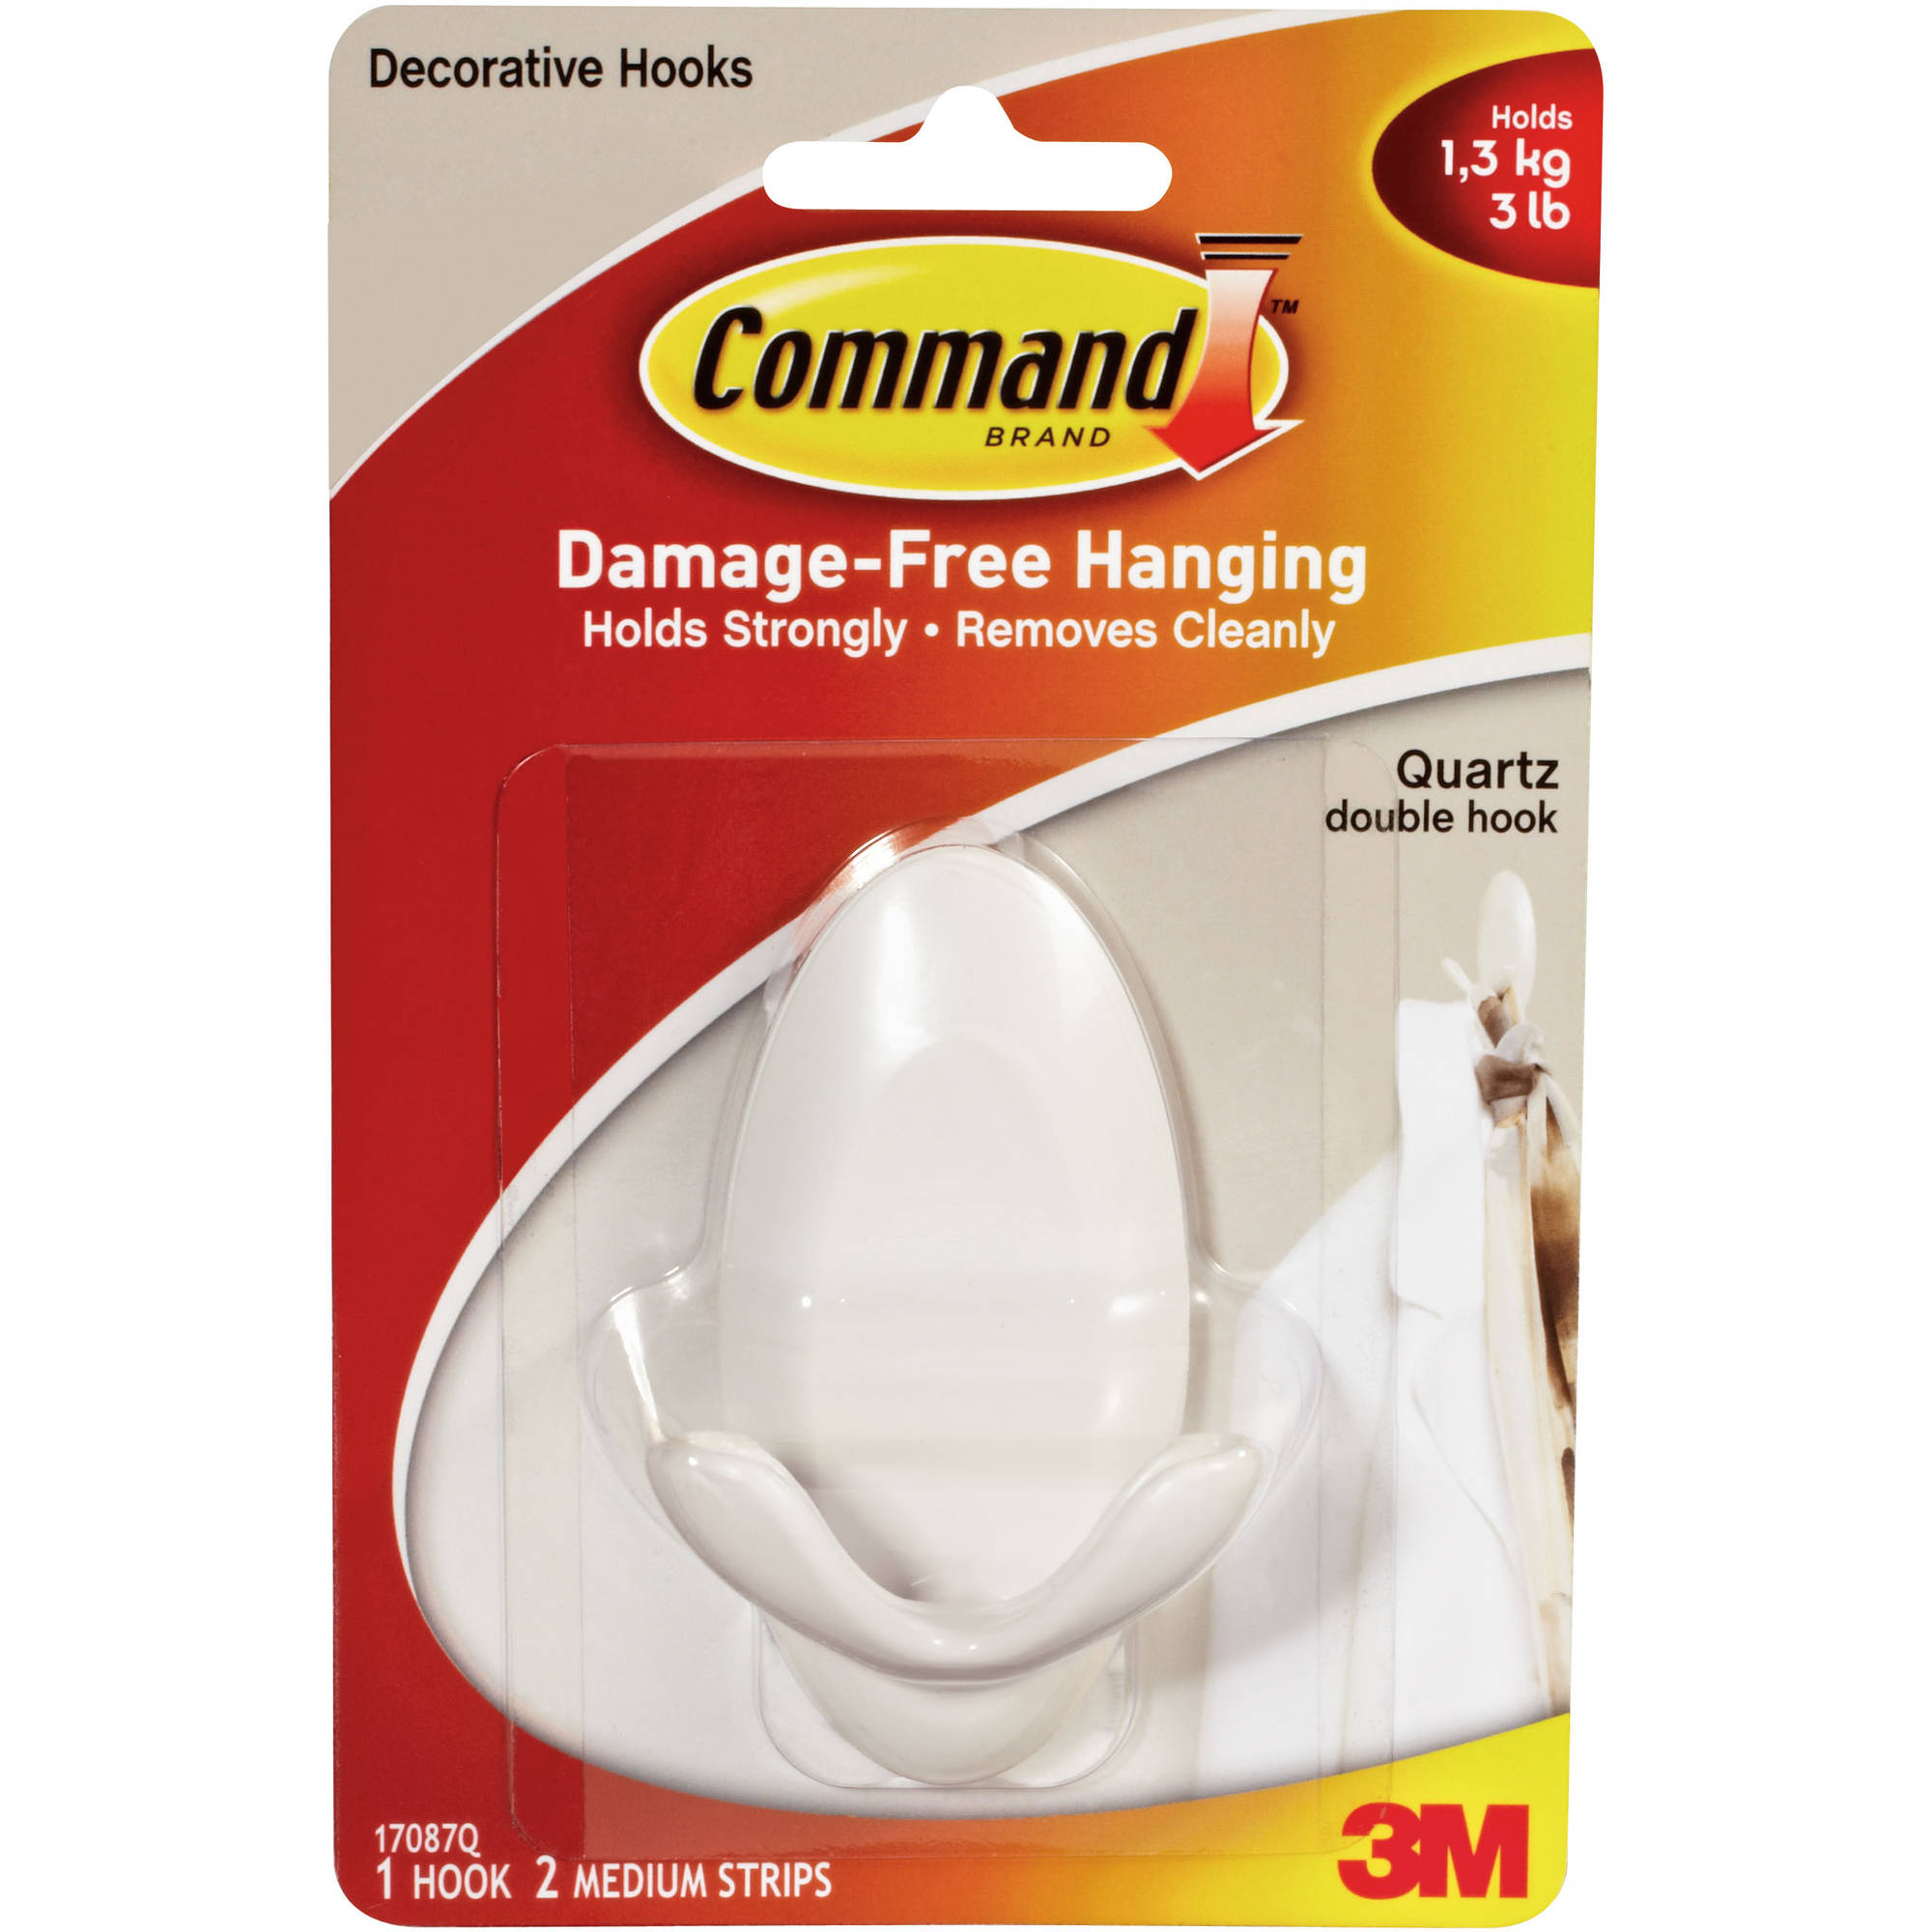 Command Quartz Double Hook, 1 Hook, 2 Strips, 17087Q